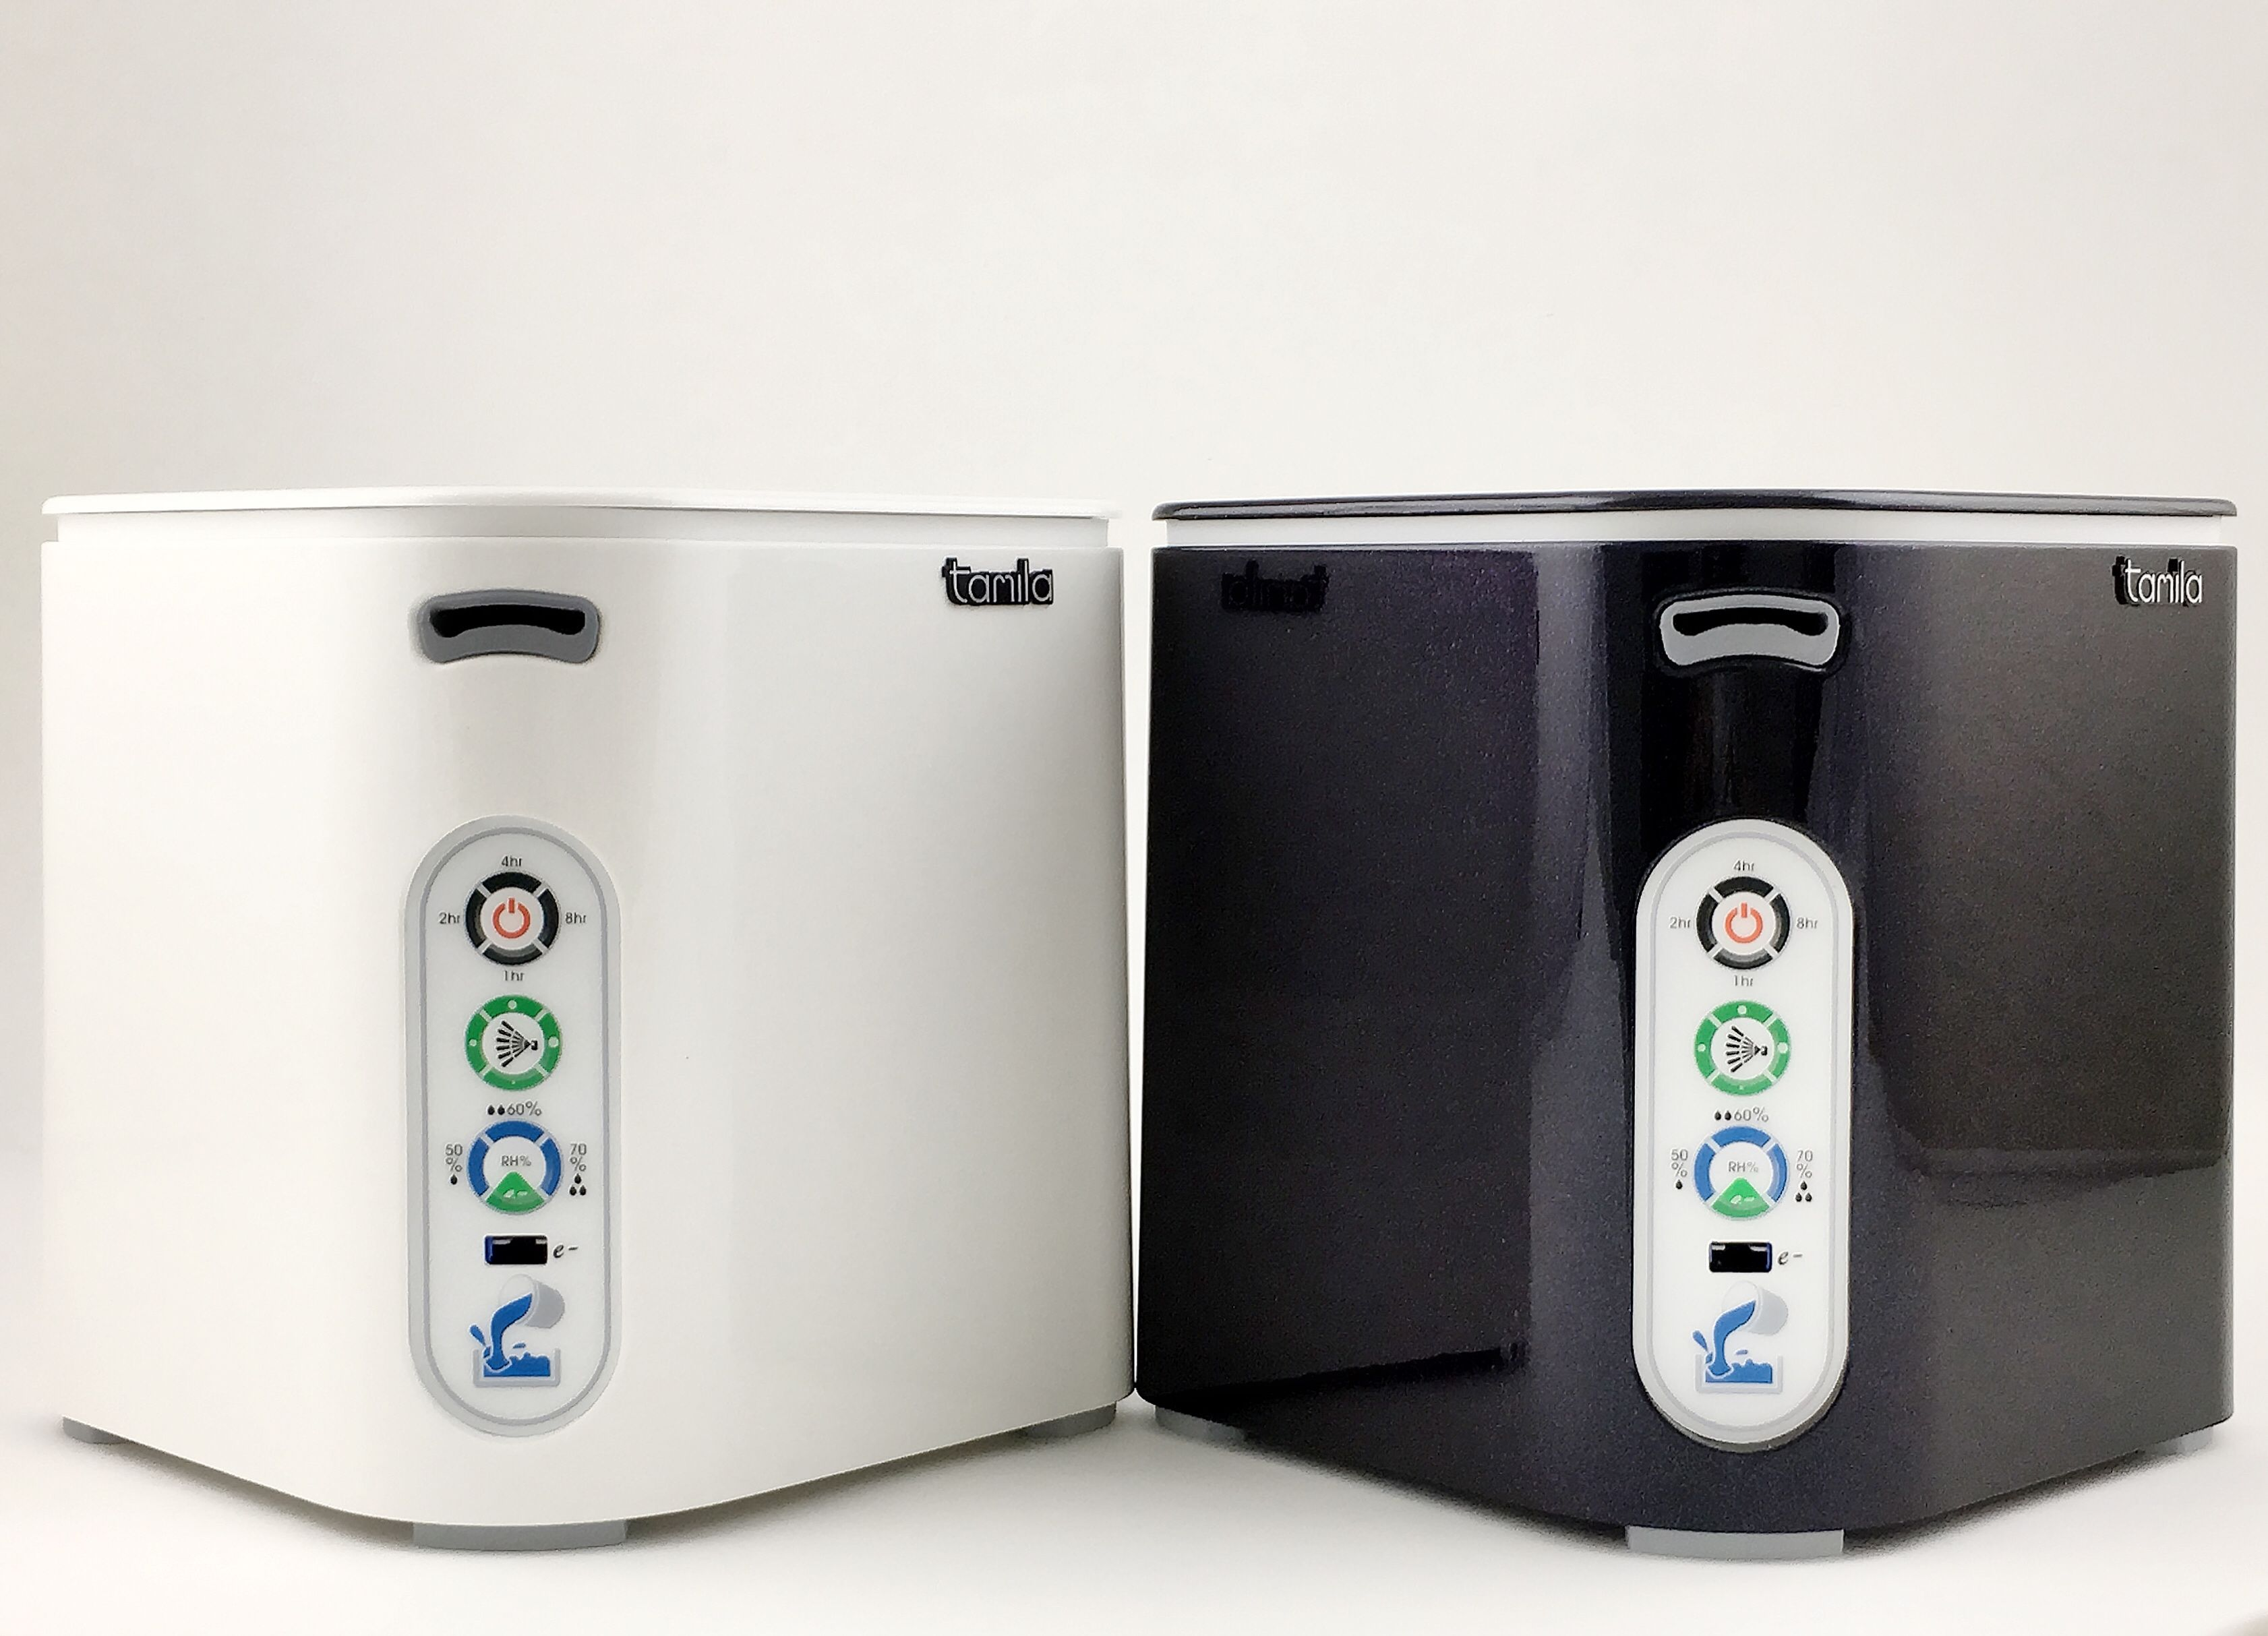 Pin by tamila on TamilaD1 (With images) Air purifier